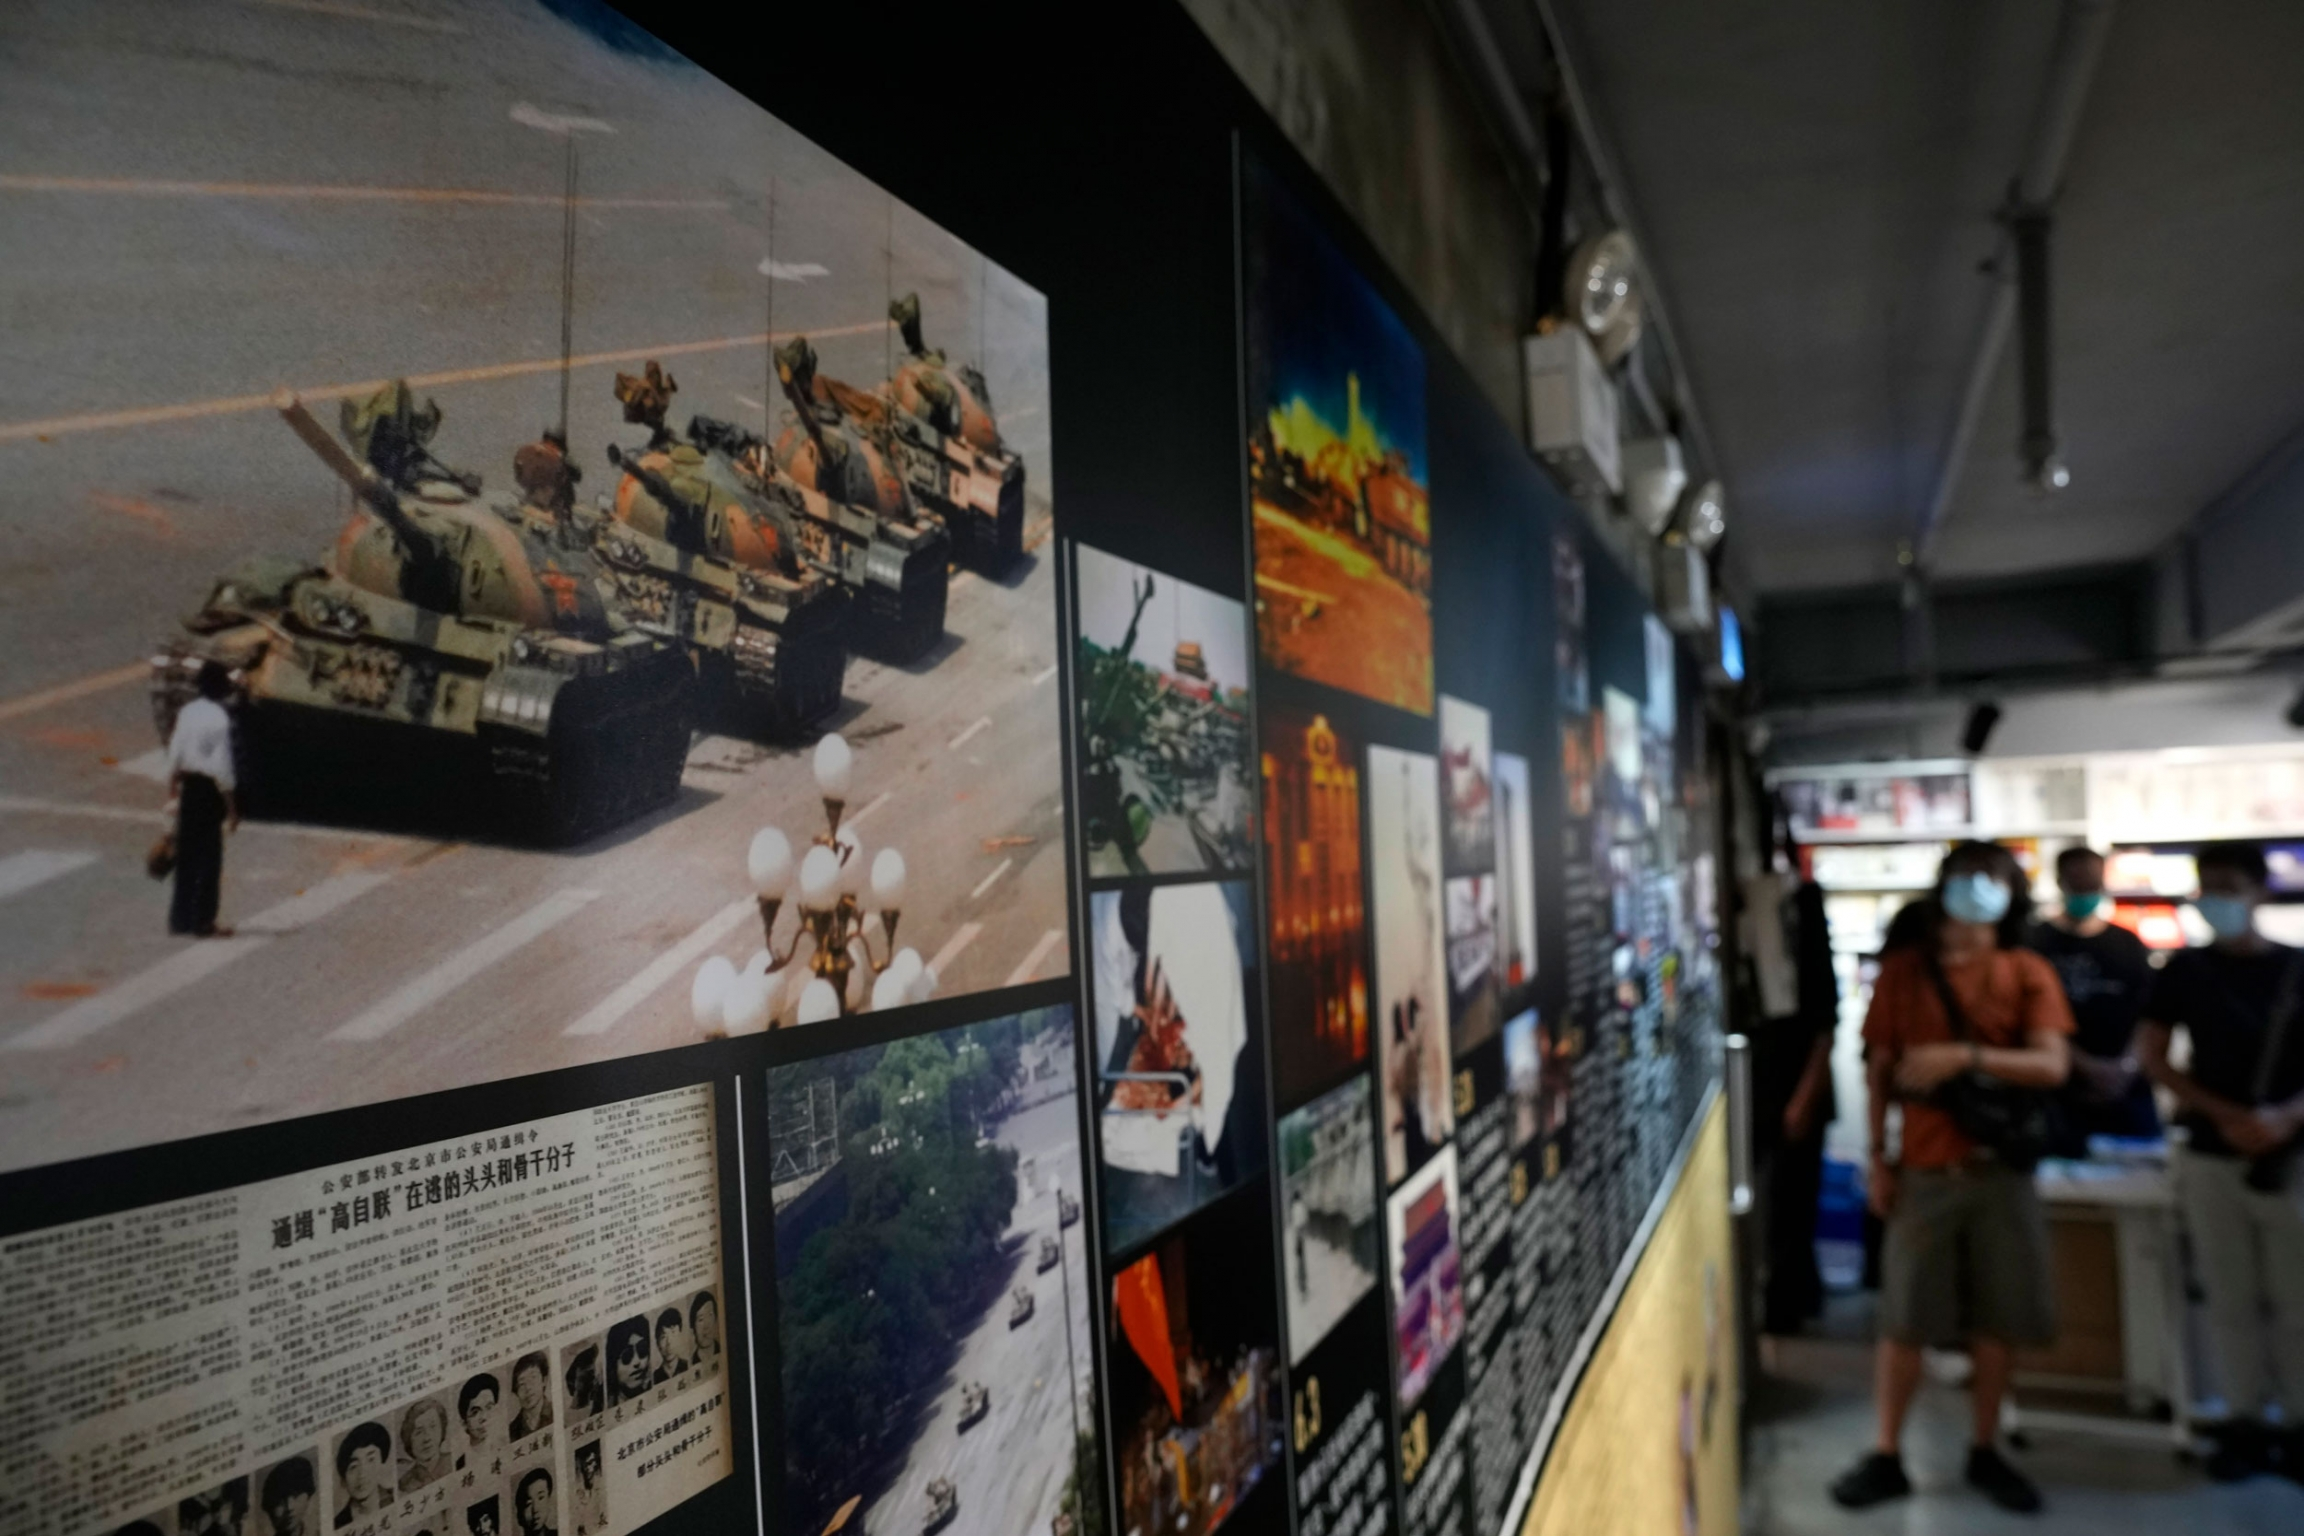 A photograph of a man blocking a line of four tanks in a street is shown hanging with other photographs and newspaper clippings.